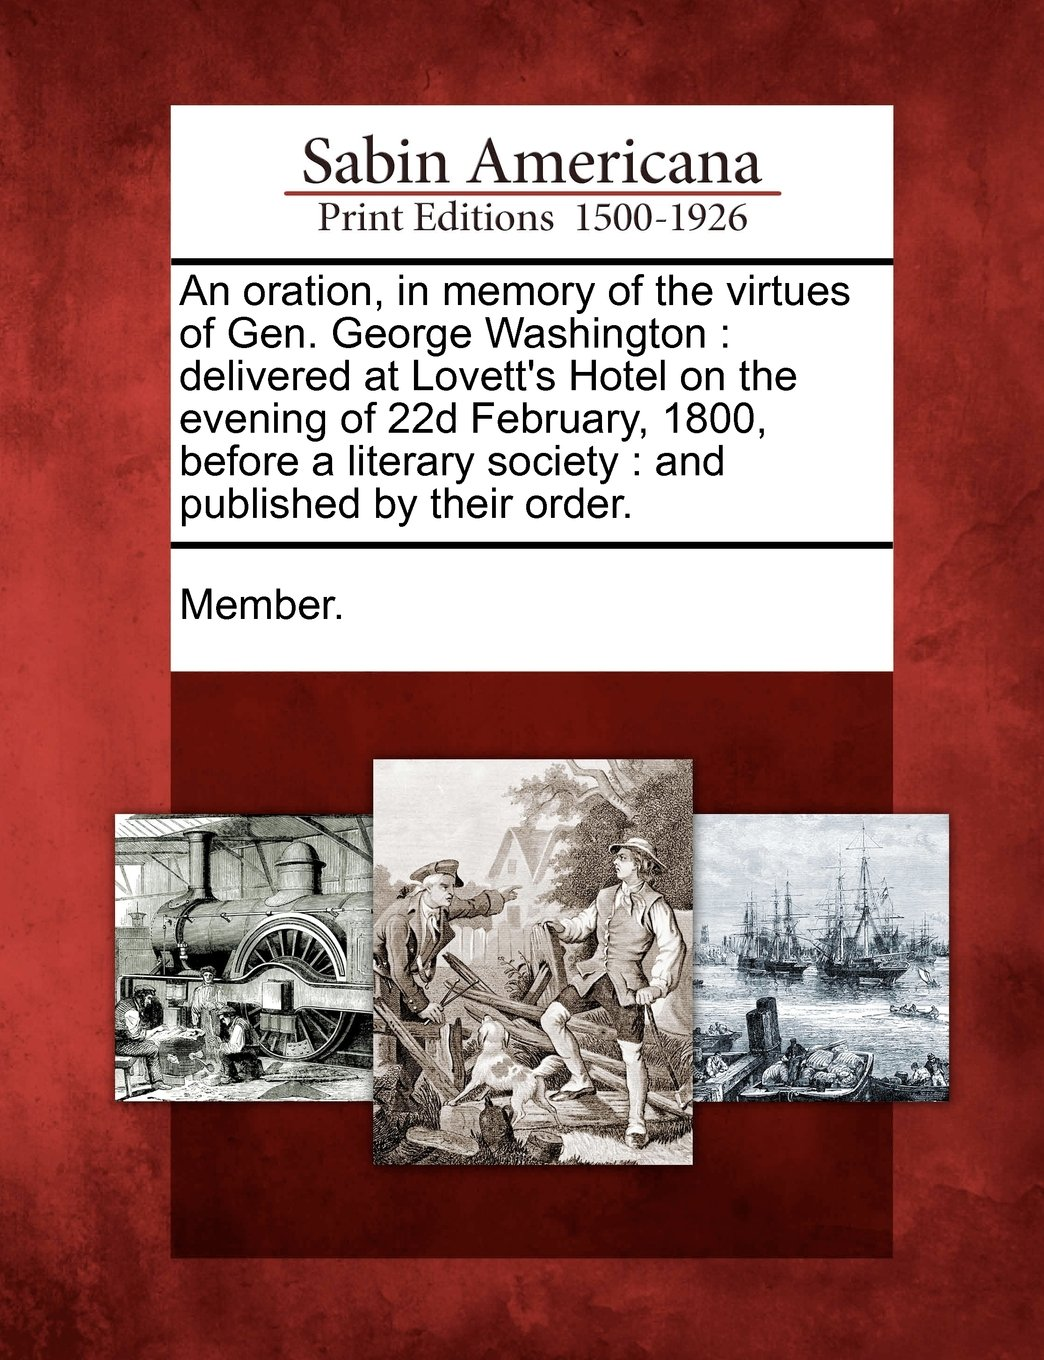 An oration, in memory of the virtues of Gen. George Washington: delivered at Lovett's Hotel on the evening of 22d February, 1800, before a literary society : and published by their order. ebook